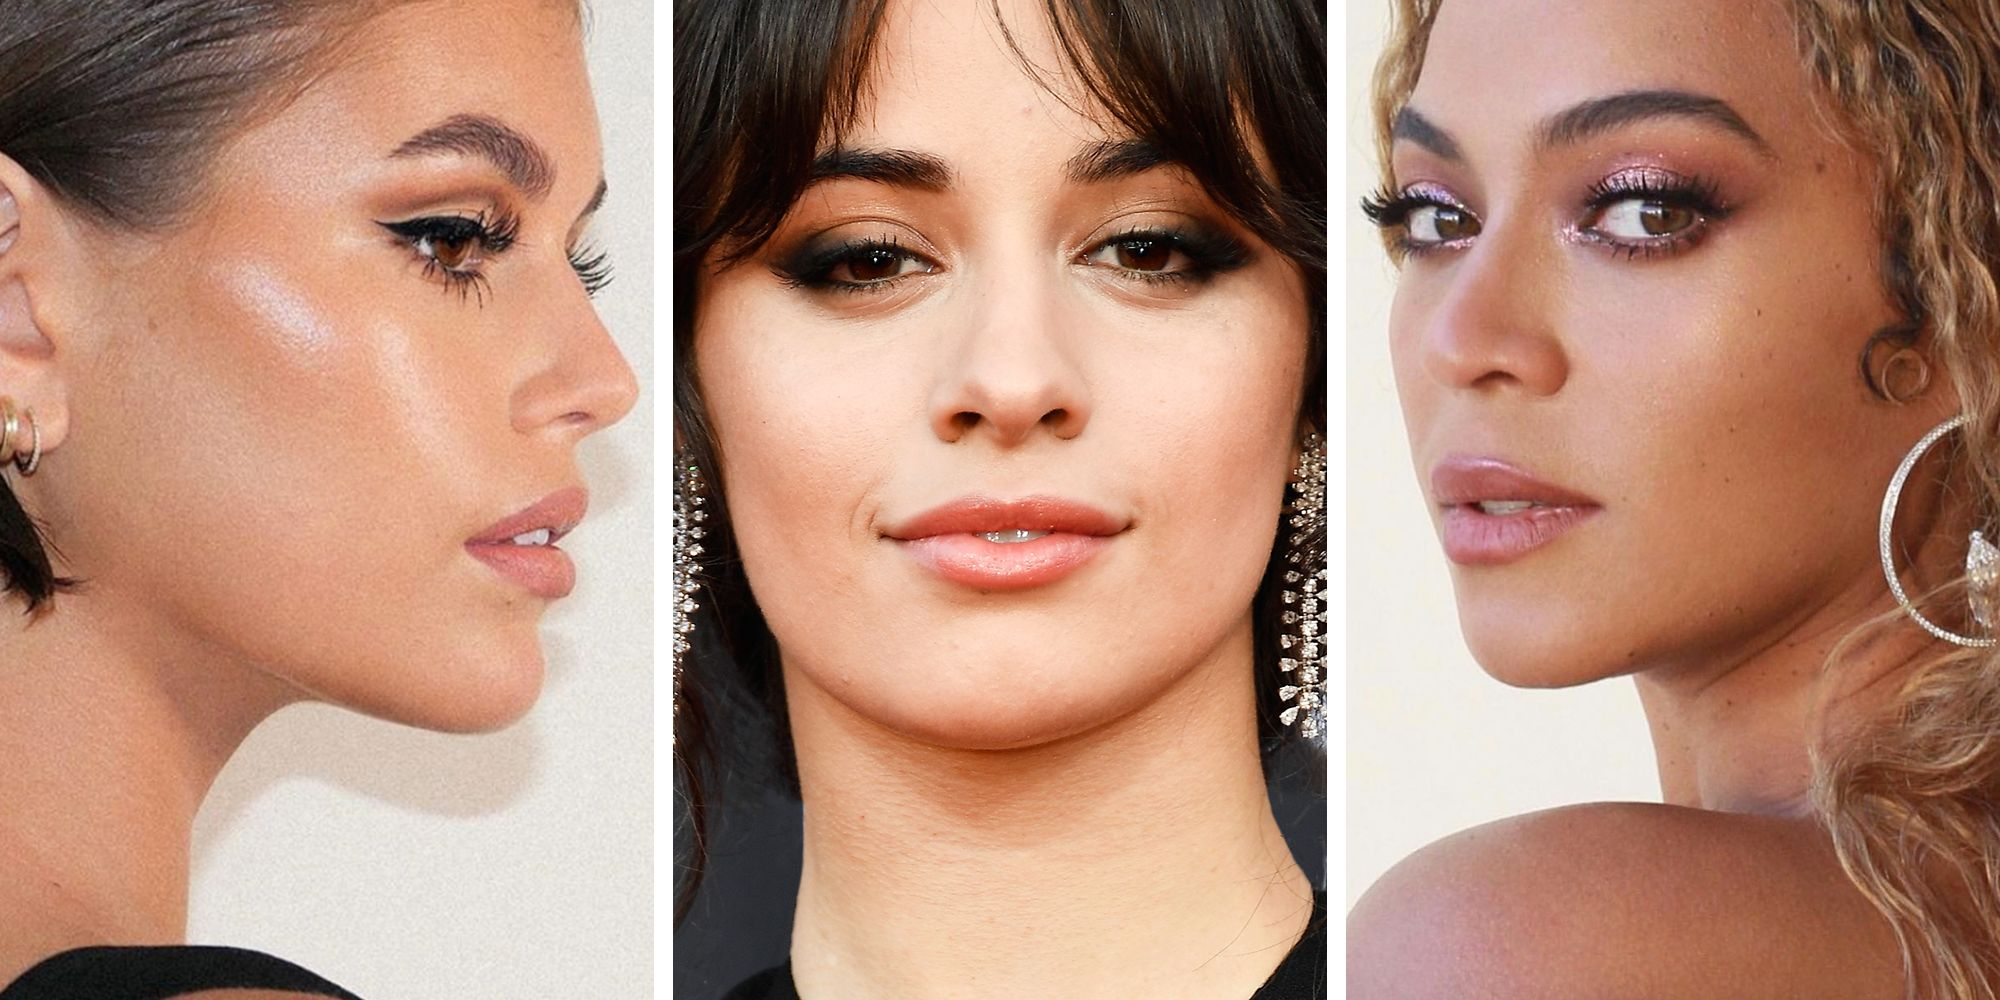 12 Celebrity Makeup Artist-Approved Trends To Help You Live Your